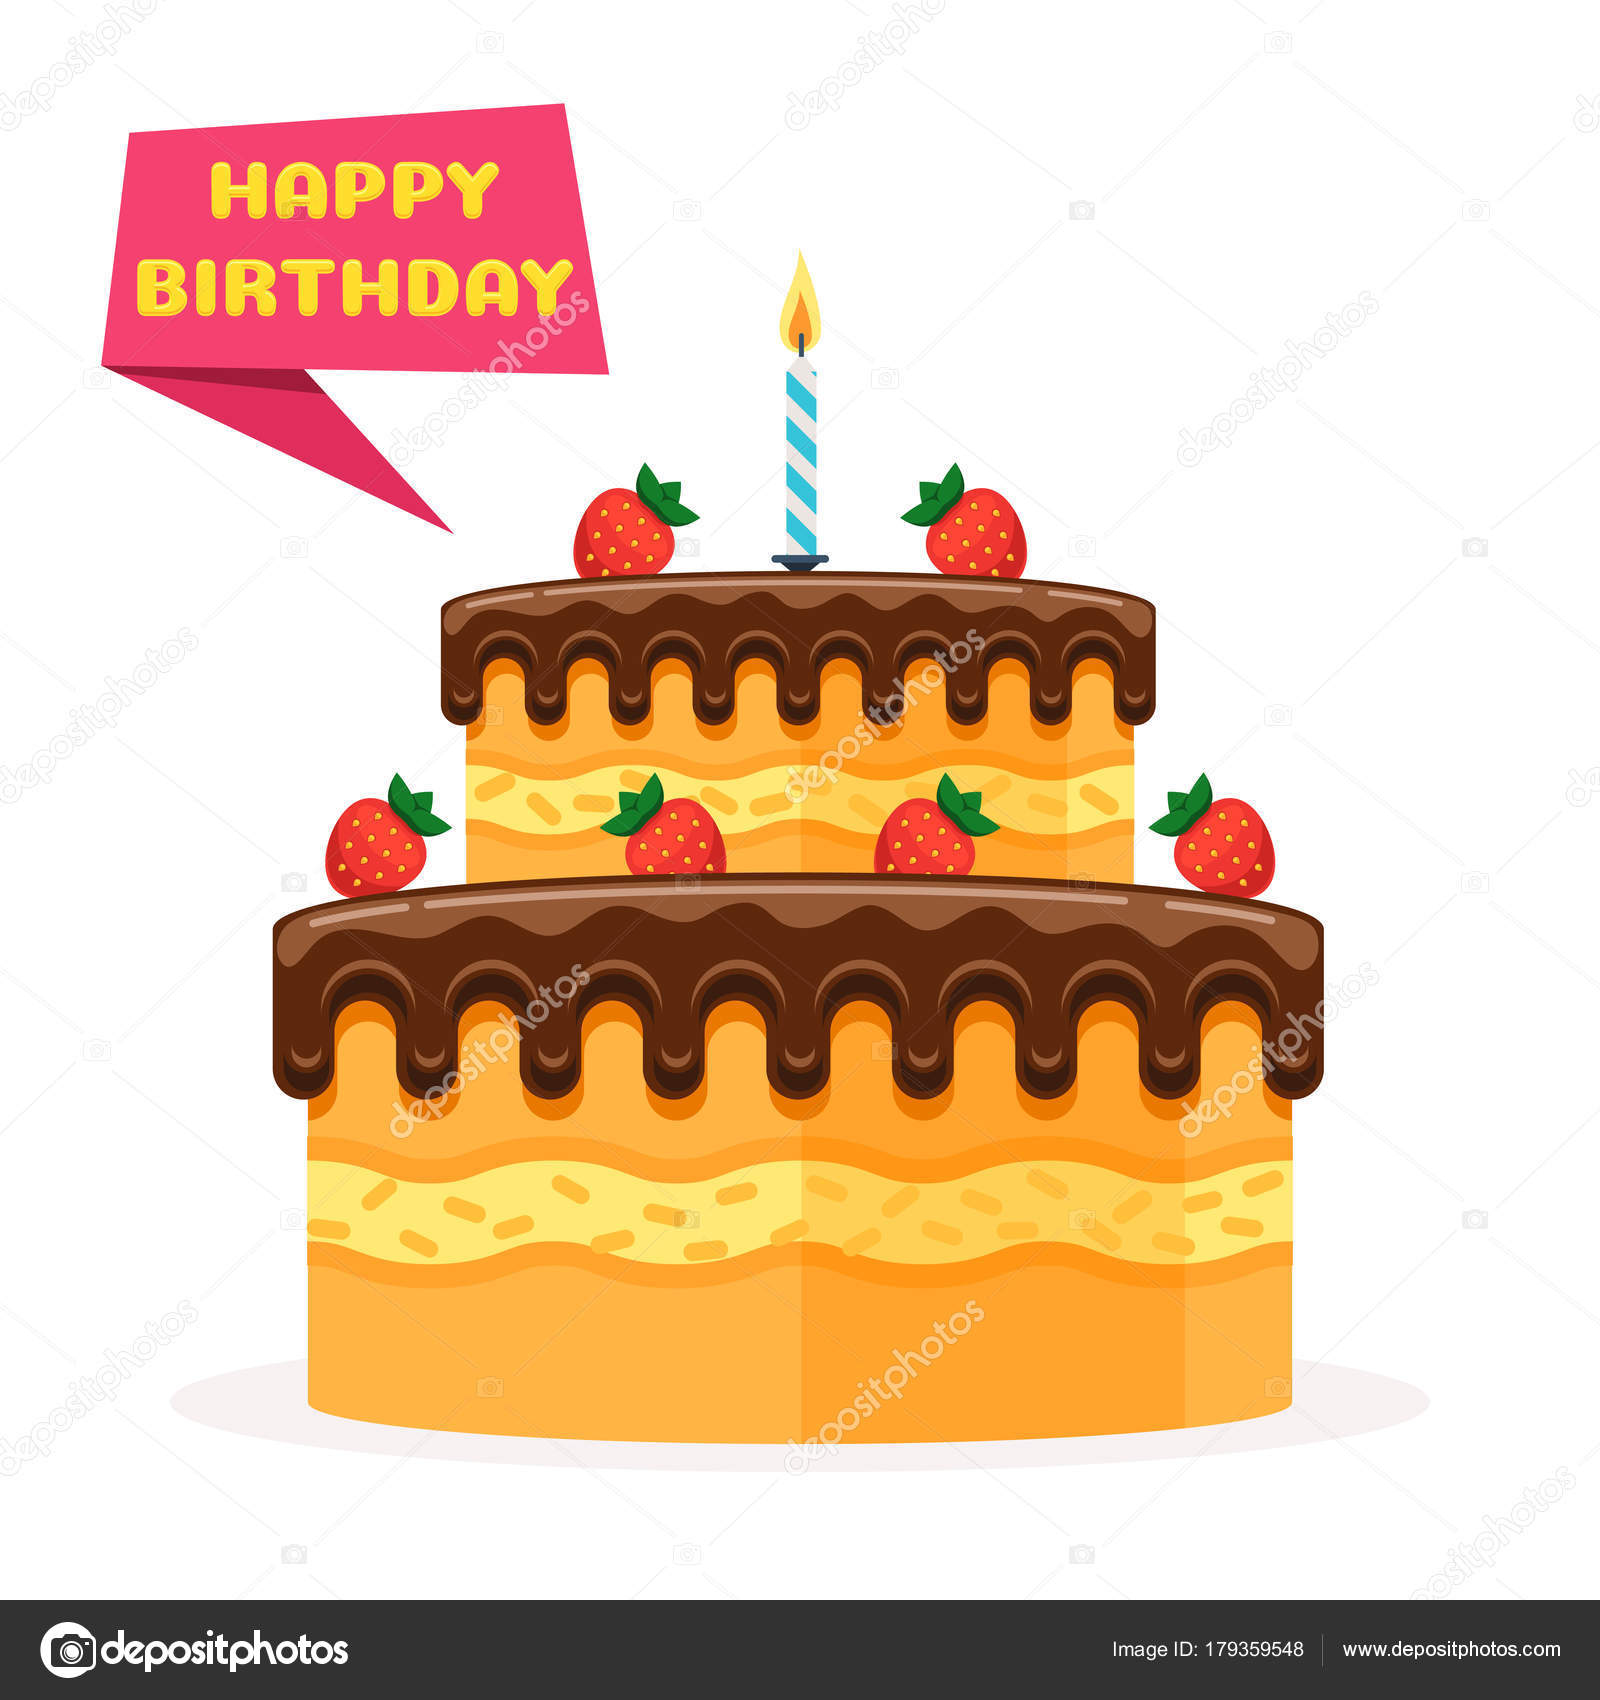 Surprising Banner On Cake Happy Birthday Banner And Cake Stock Vector Birthday Cards Printable Opercafe Filternl